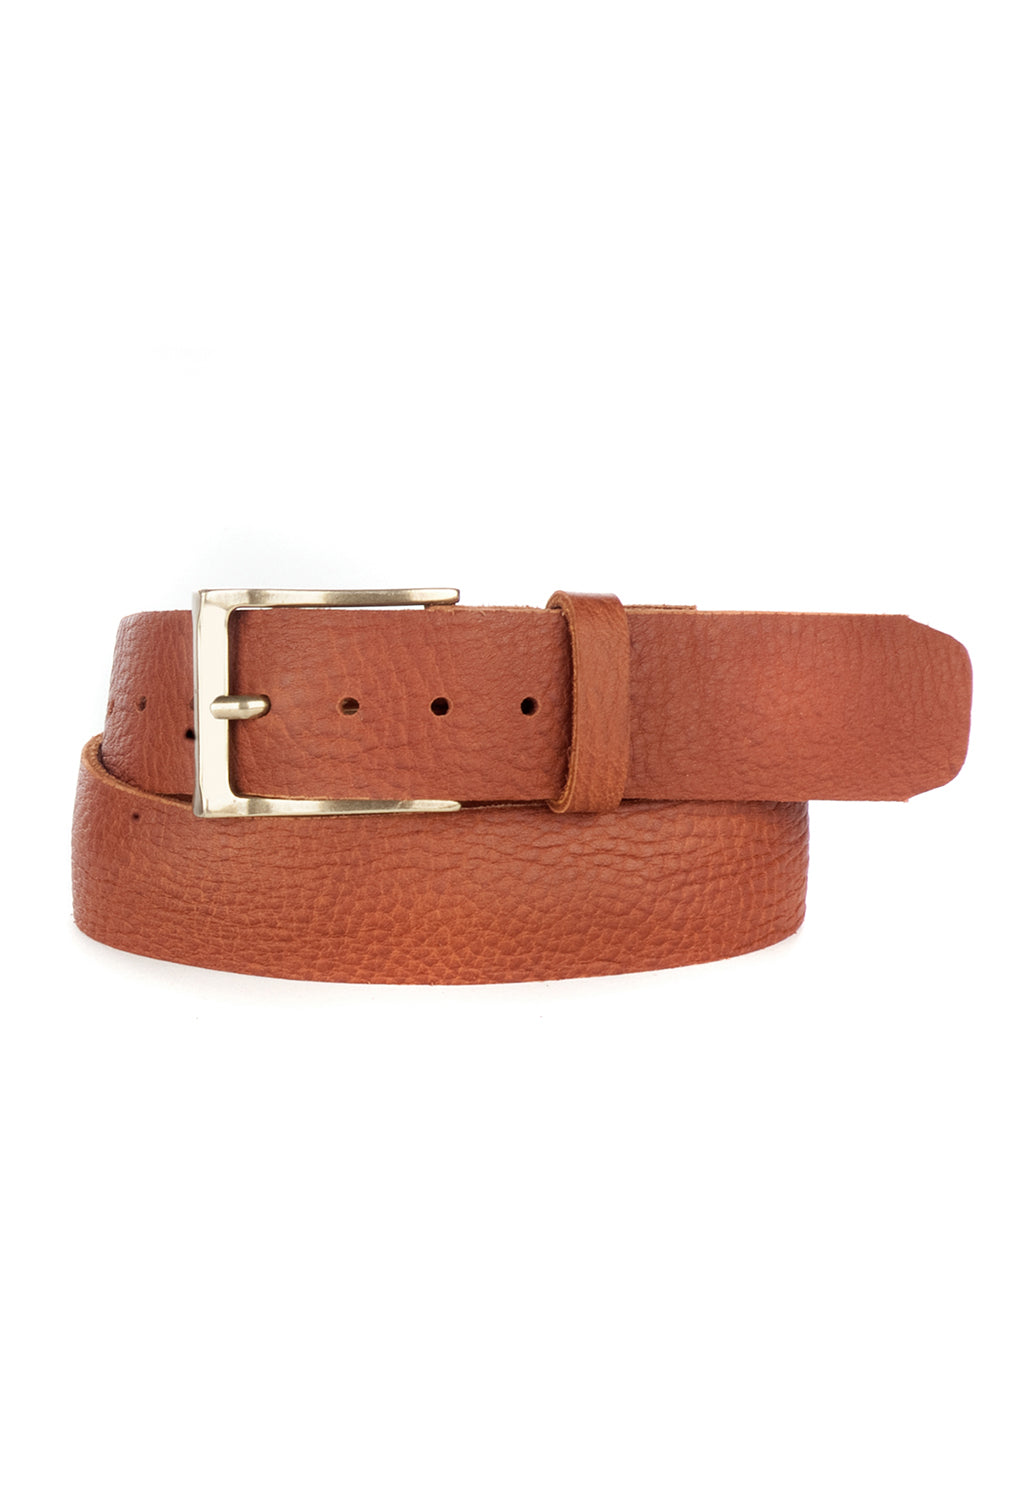 Cava Scotch Belt